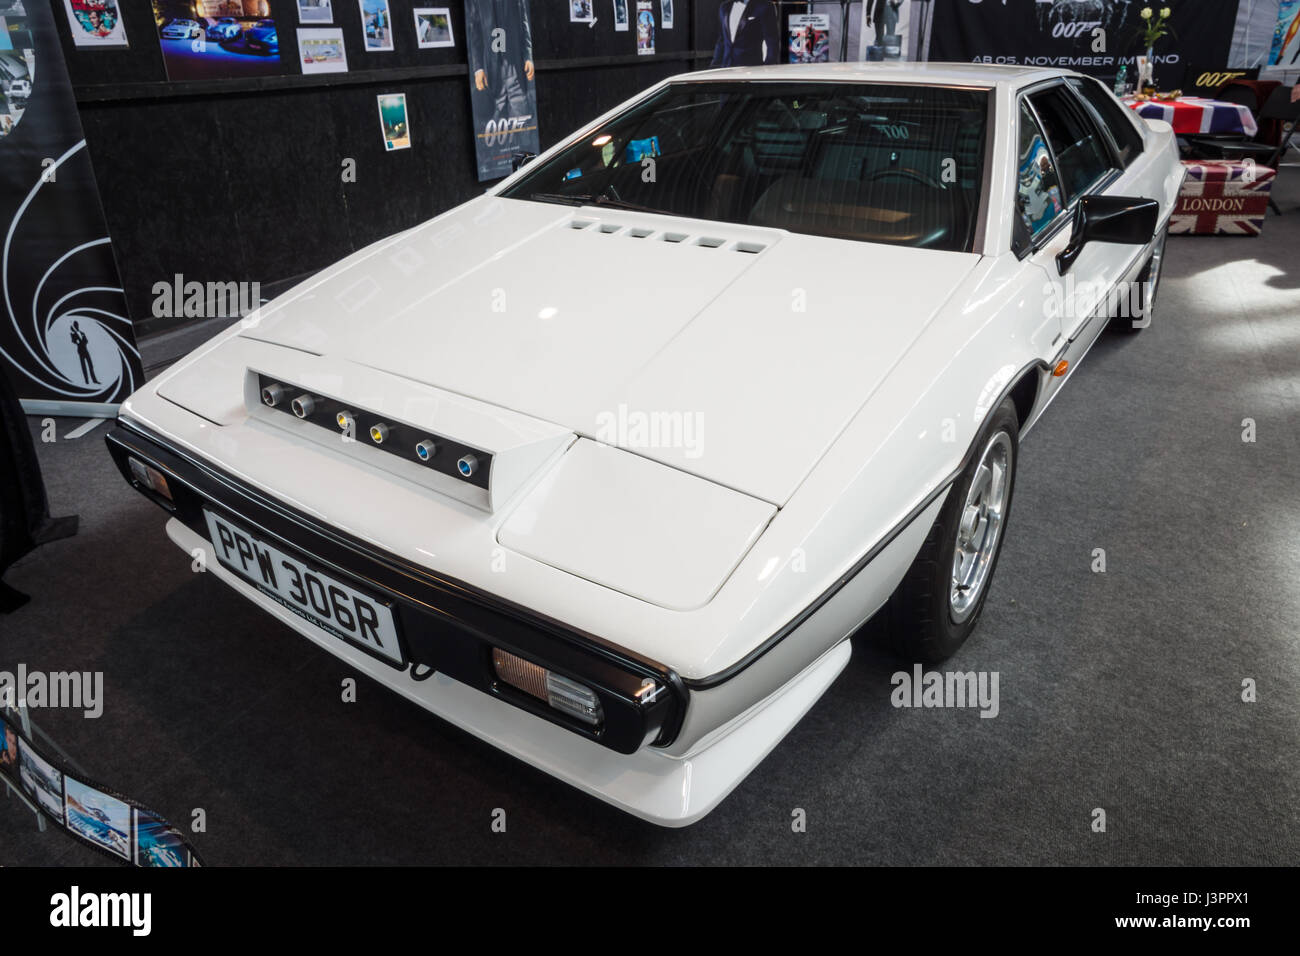 STUTTGART, GERMANY - MARCH 03, 2017: Sports car Lotus Esprit S1, 1977. From the film about James Bond 'The Spy - Stock Image